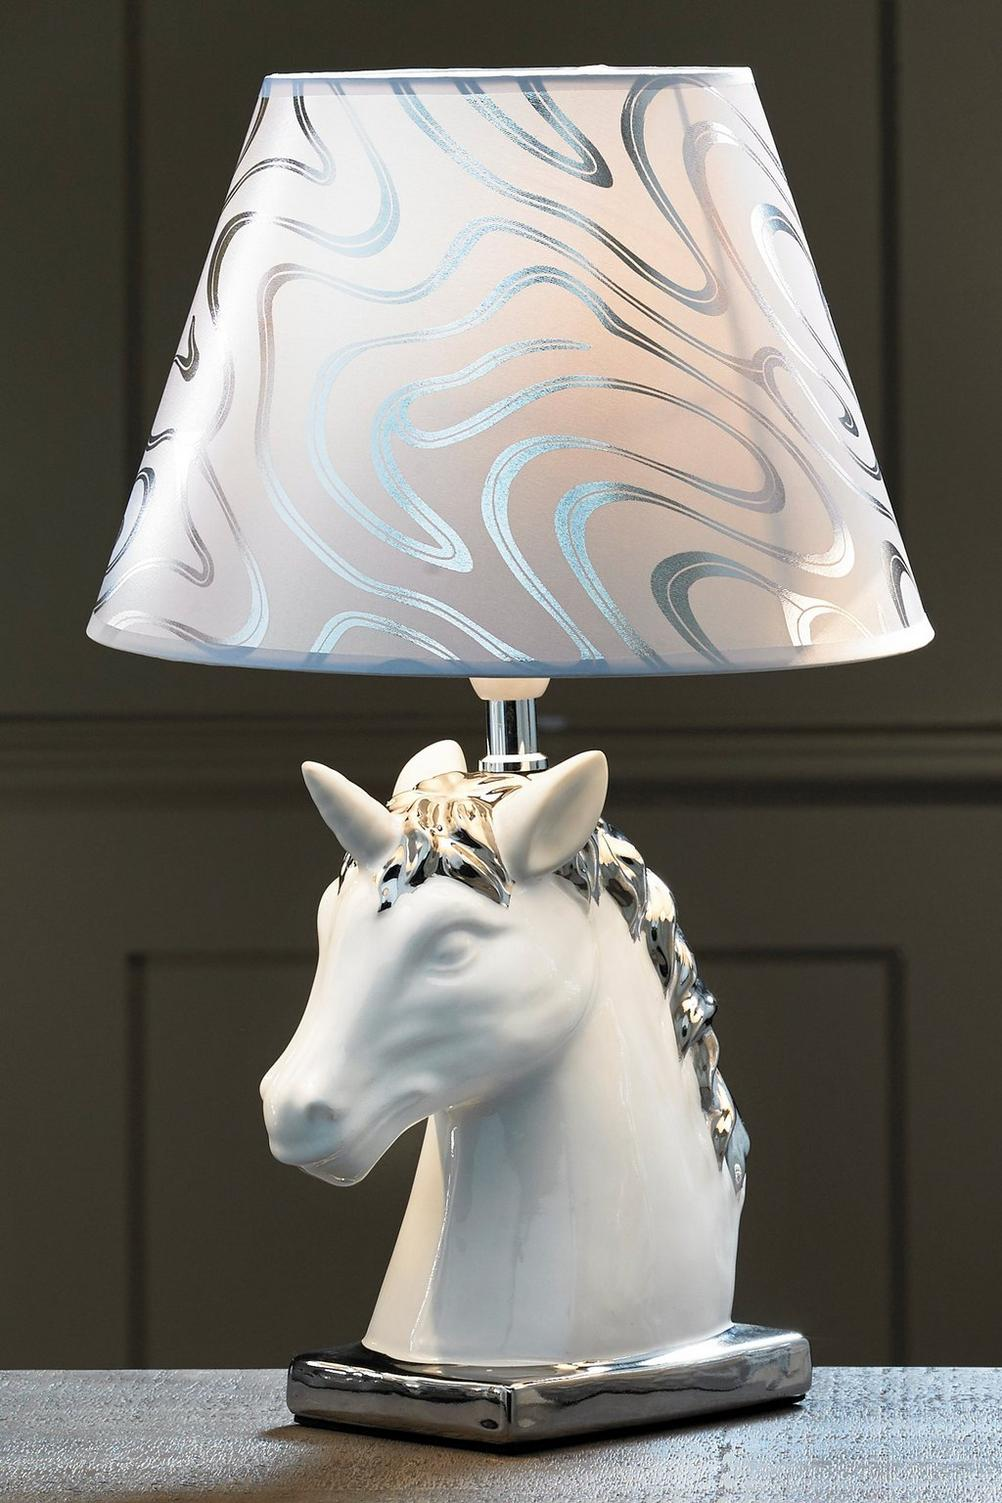 Image for Unicorn Table Top Lamp from studio